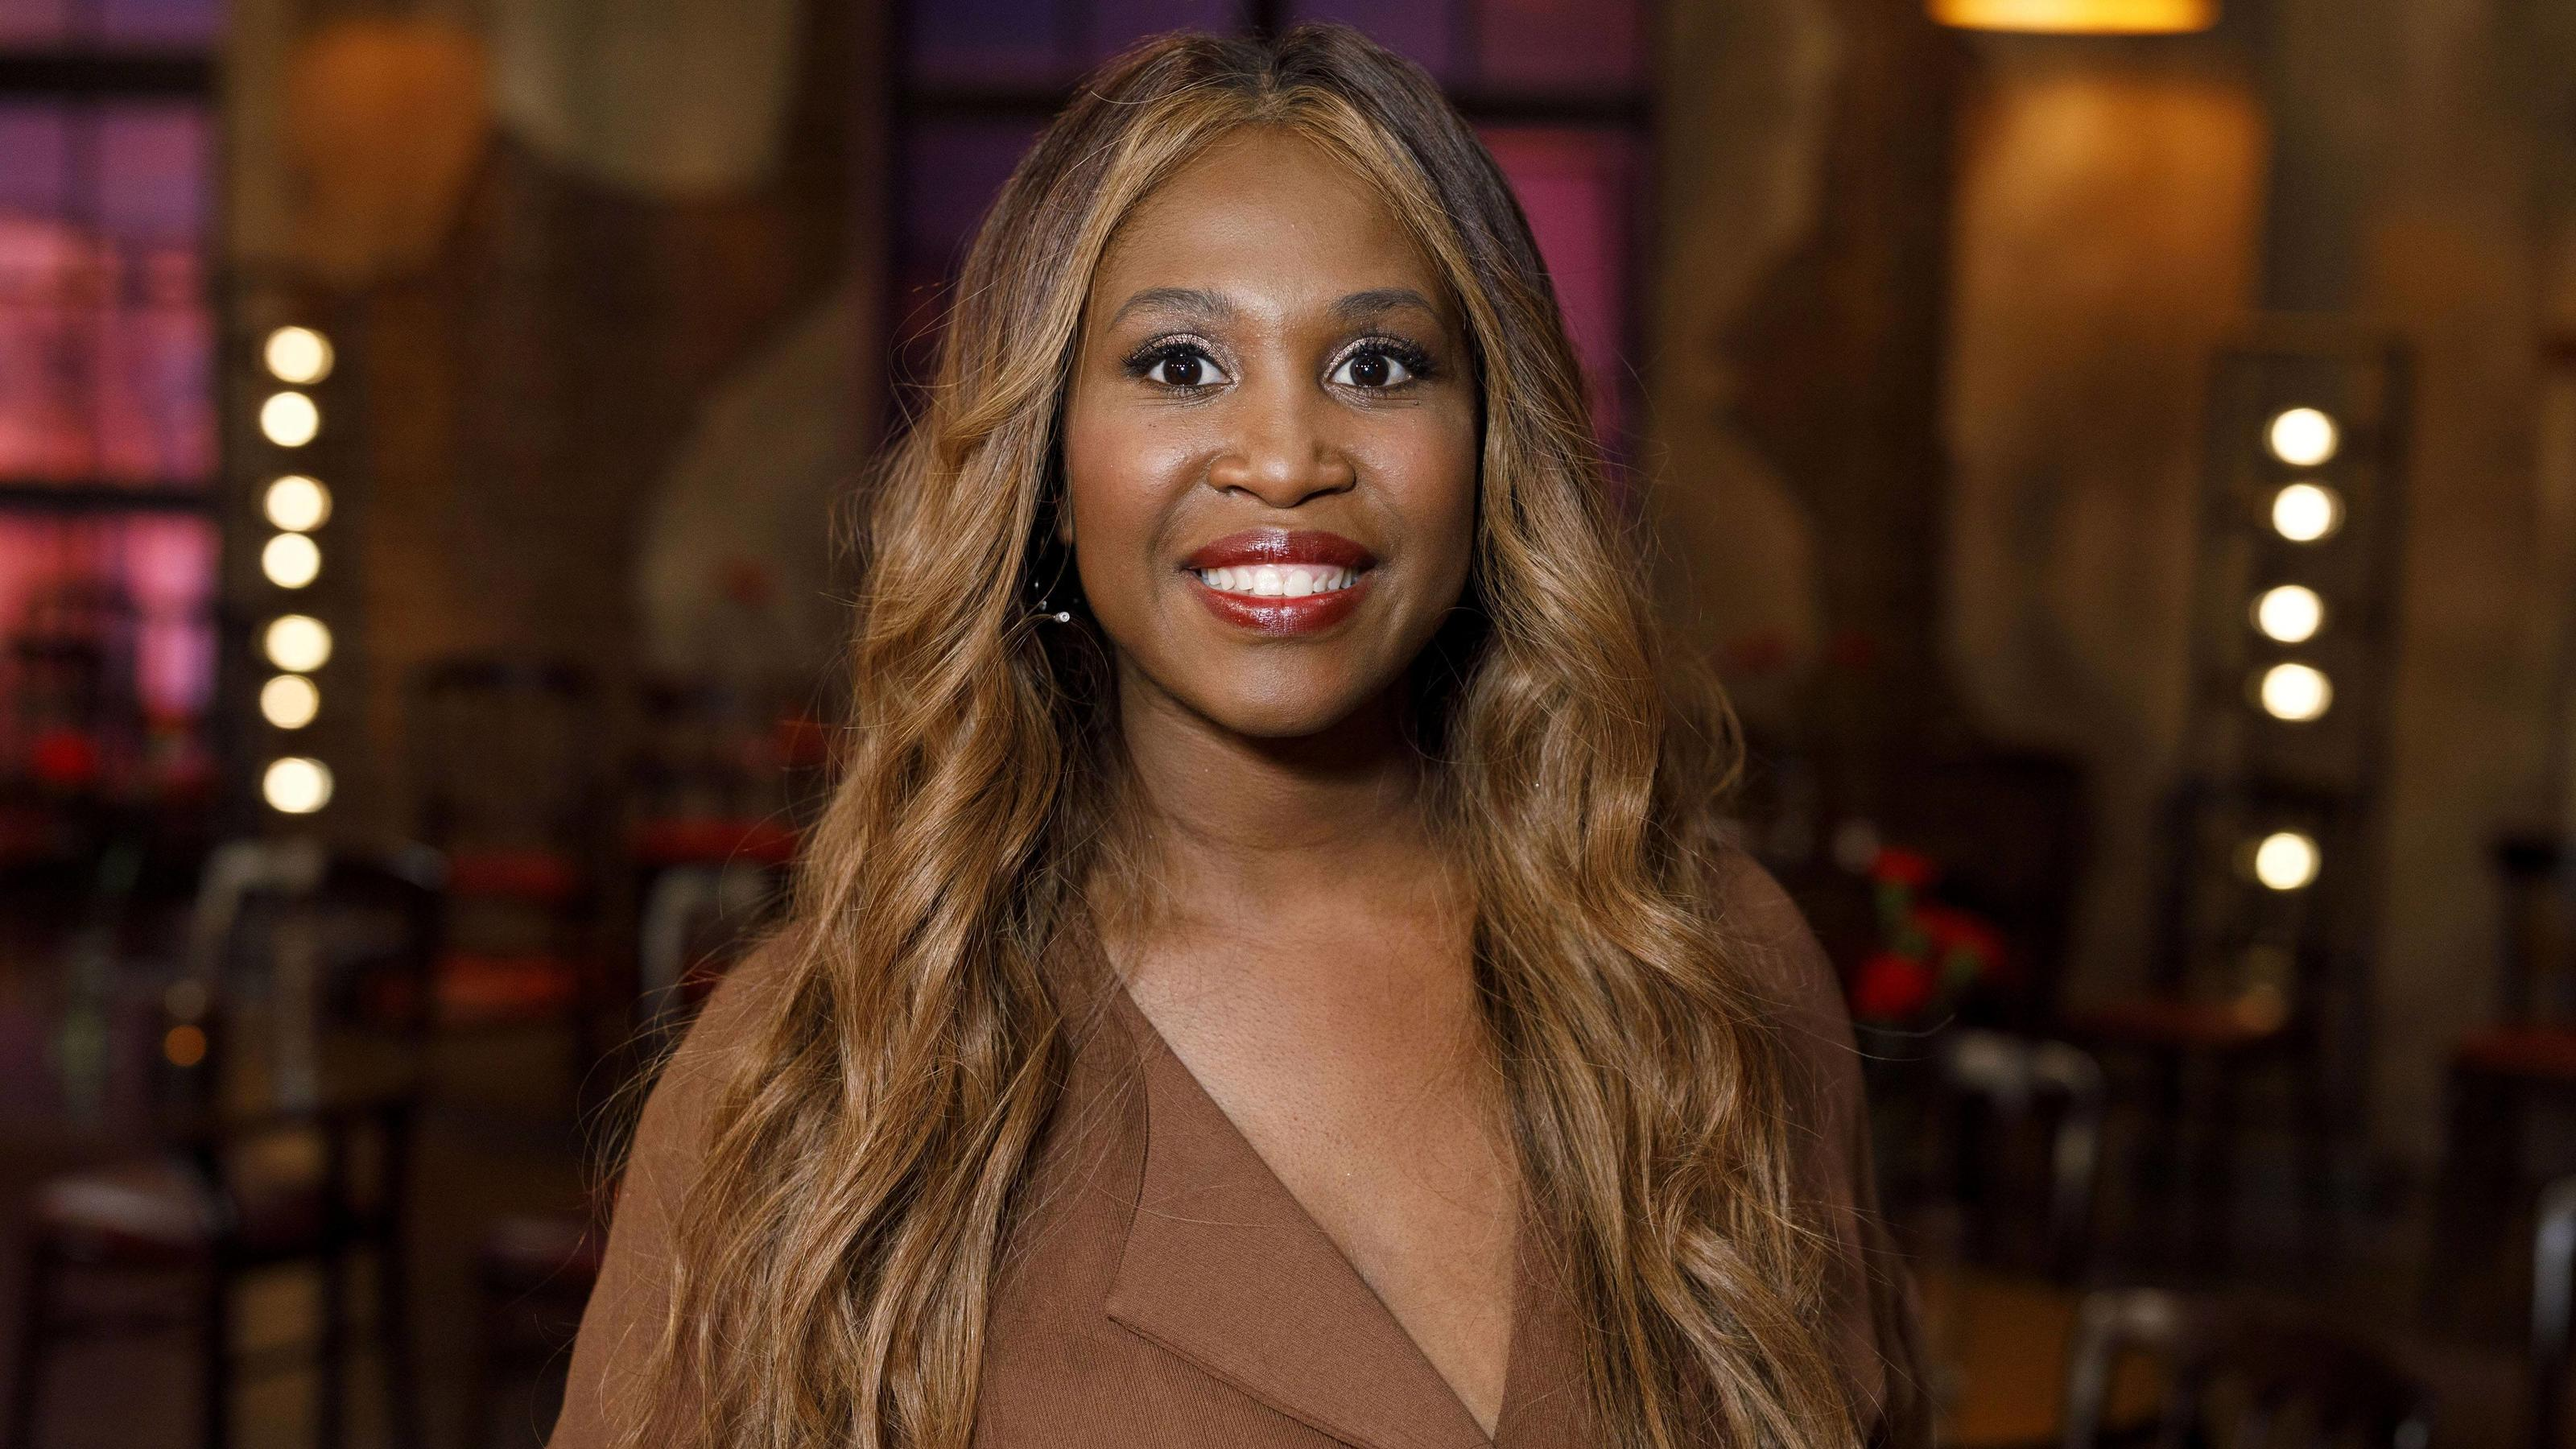 Motsi Mabuse bei der Aufzeichnung der WDR-Talkshow Kölner Treff im WDR Studio BS 2. Köln, 08.03.2019 *** Motsi Mabuse at the recording of the WDR talk show Kölner Treff at WDR Studio BS 2 Köln 08 03 2019 Foto:xC.xHardtx/xFuturexImage